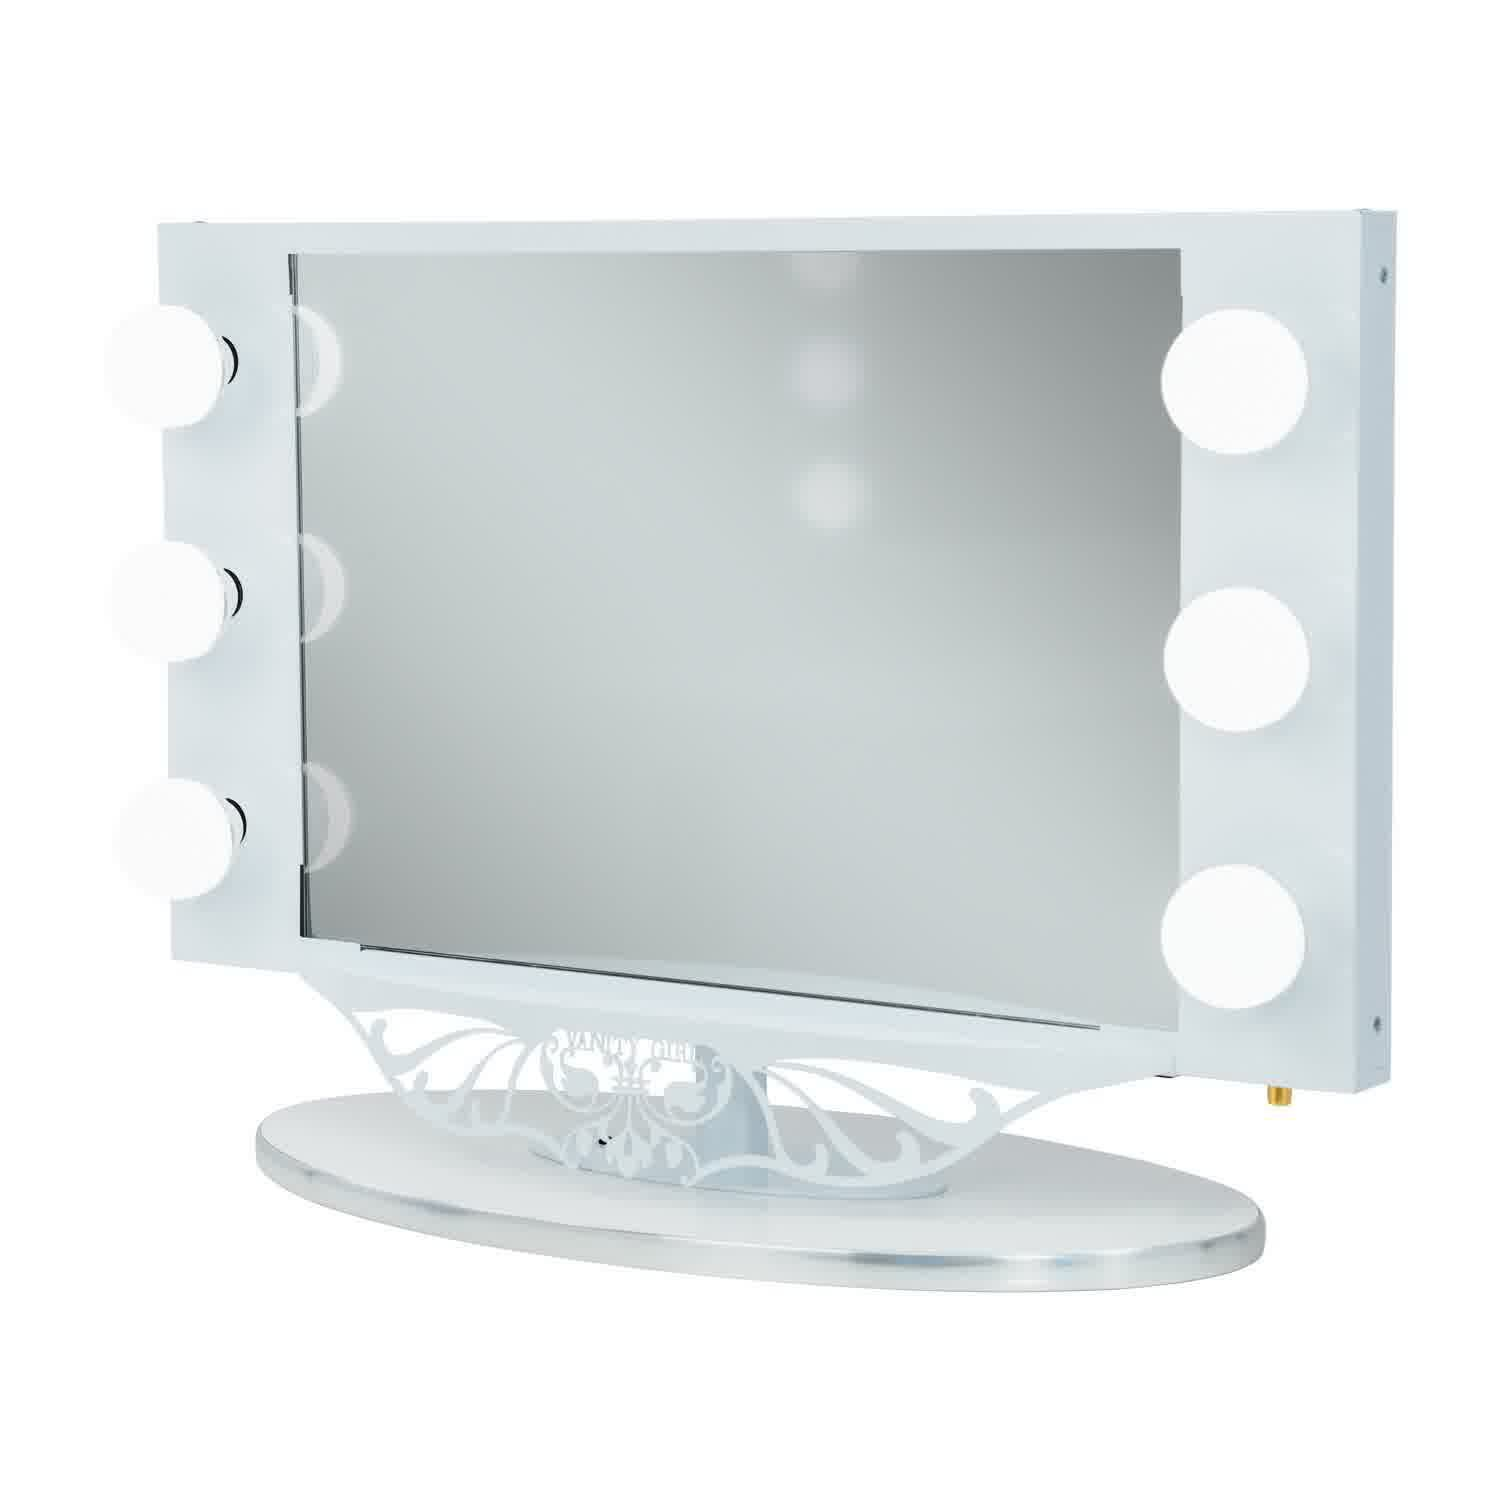 Vanity Mirror With Lights White : Starlet Lighted Vanity Mirror in Simple Frame Design